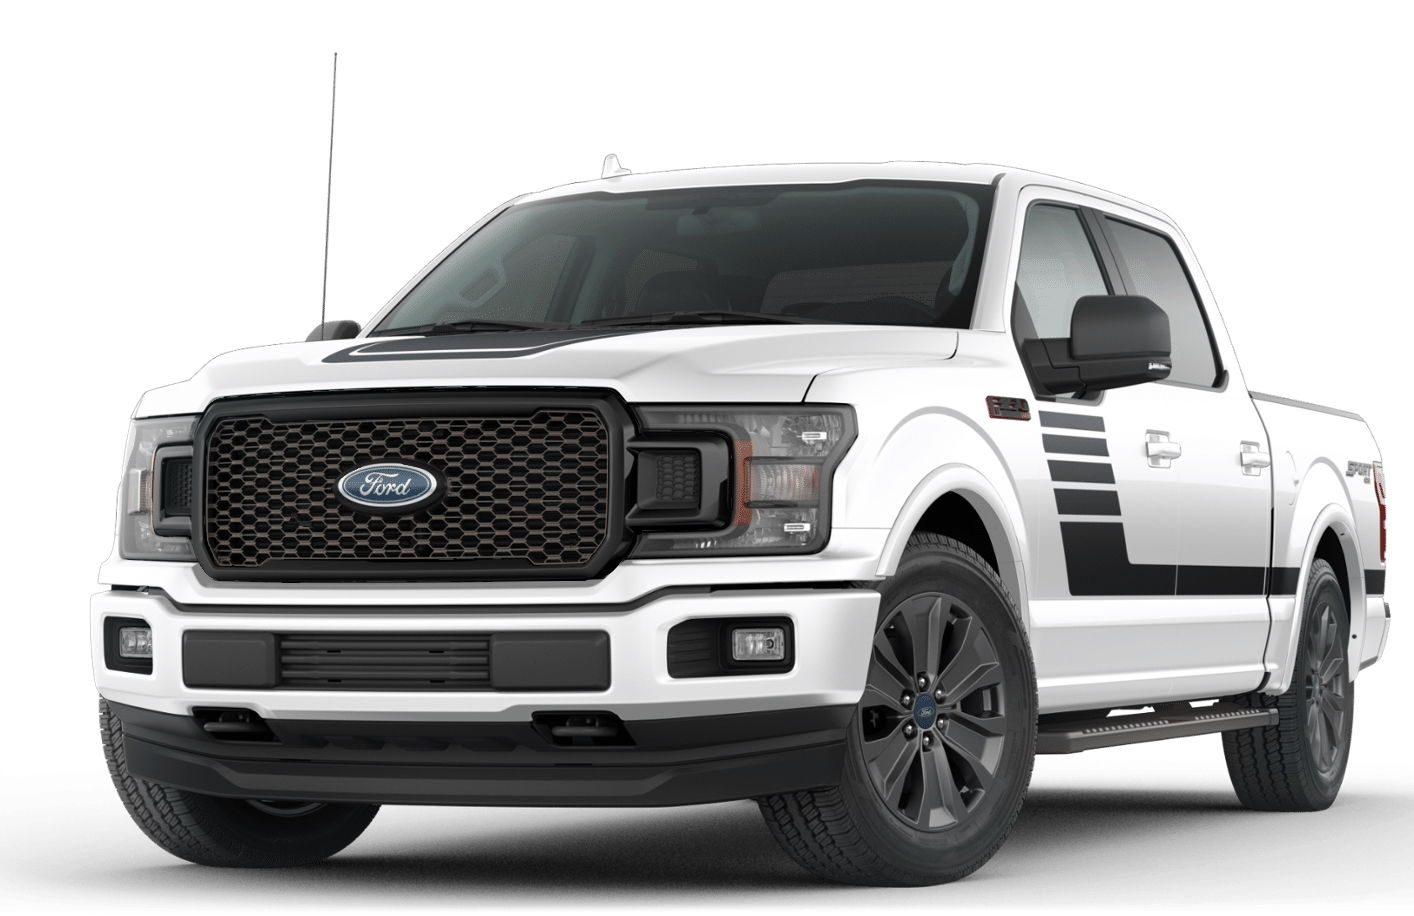 2018 black lariat sport grille on white truck page 2 ford f150 forum community of ford. Black Bedroom Furniture Sets. Home Design Ideas